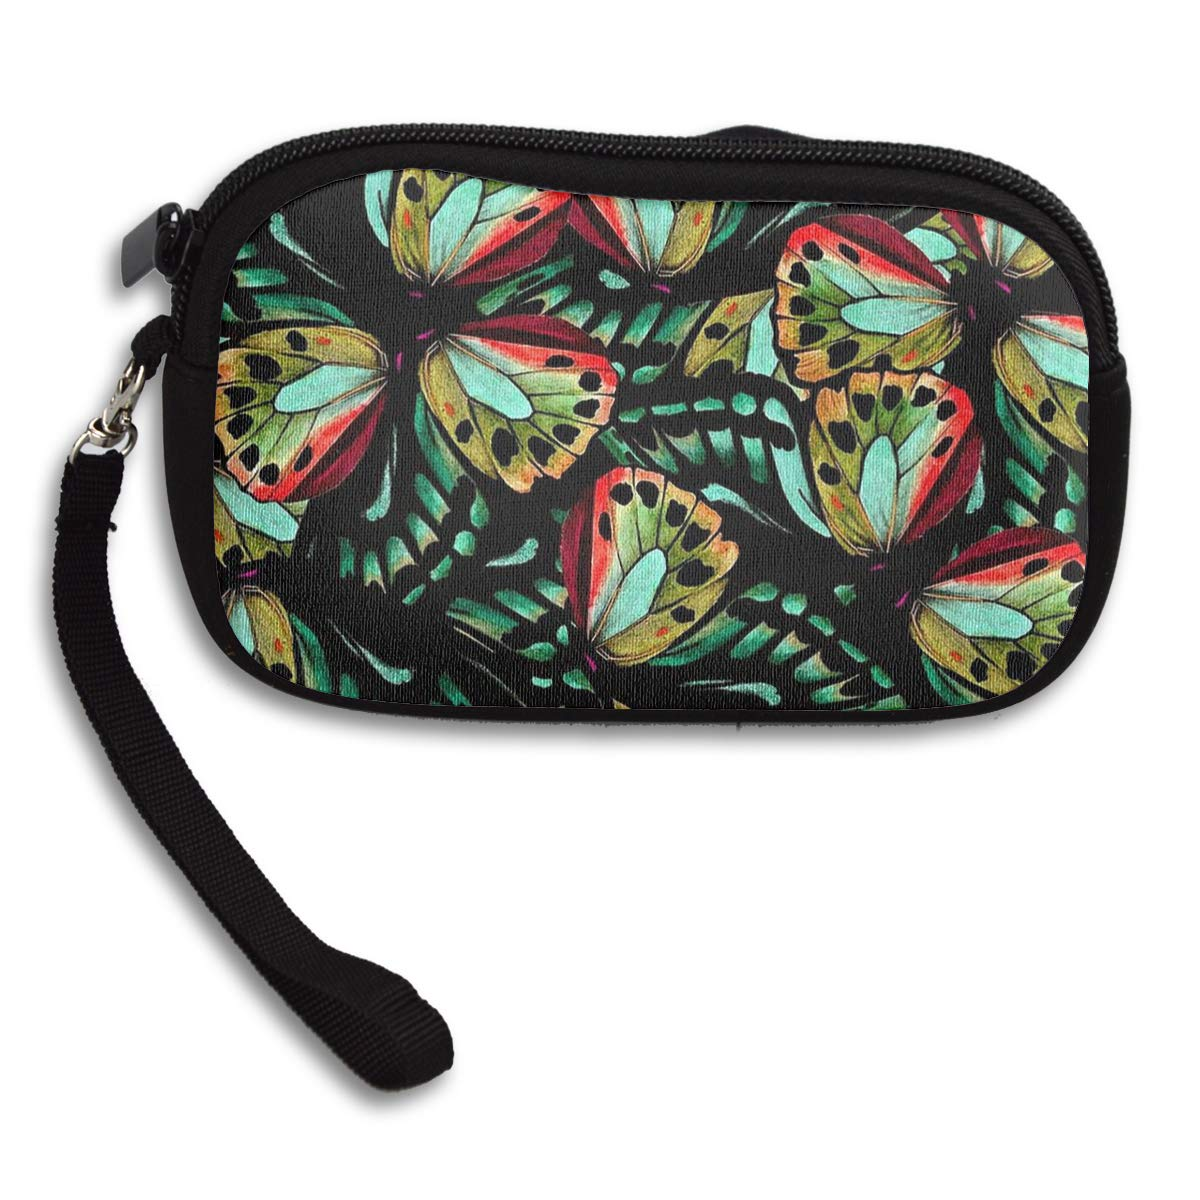 Coin Purse Beautiful Butterfly wallet change Purse with Zipper Wallet Coin Pouch Mini Size Cash Phone Holder